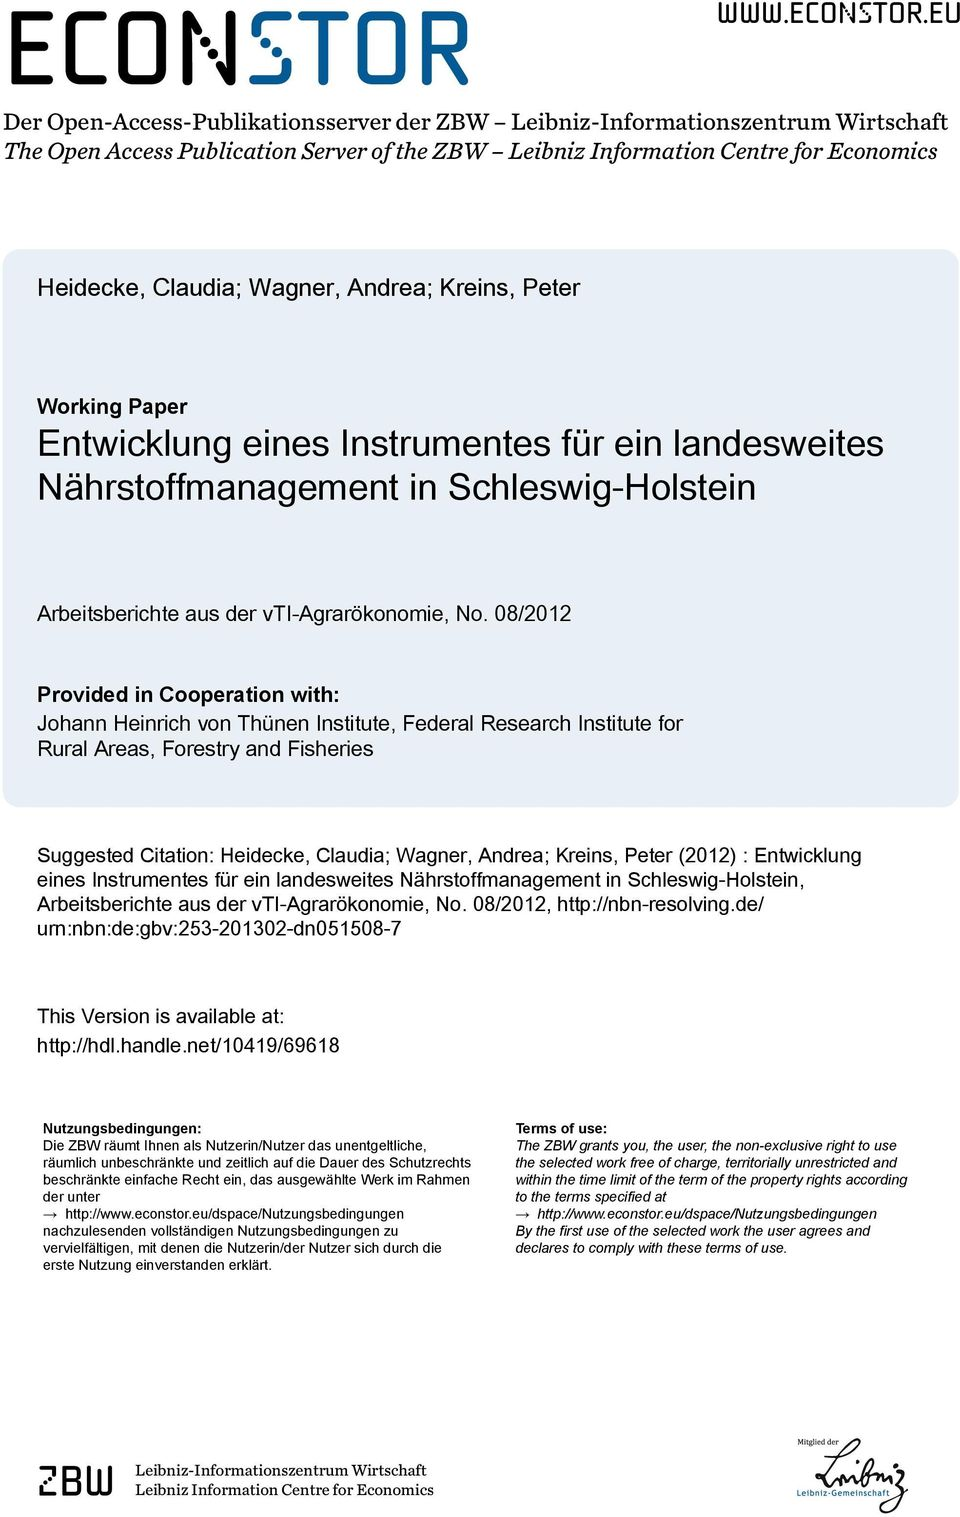 eu Der Open-Access-Publikationsserver der ZBW Leibniz-Informationszentrum Wirtschaft The Open Access Publication Server of the ZBW Leibniz Information Centre for Economics Heidecke, Claudia; Wagner,